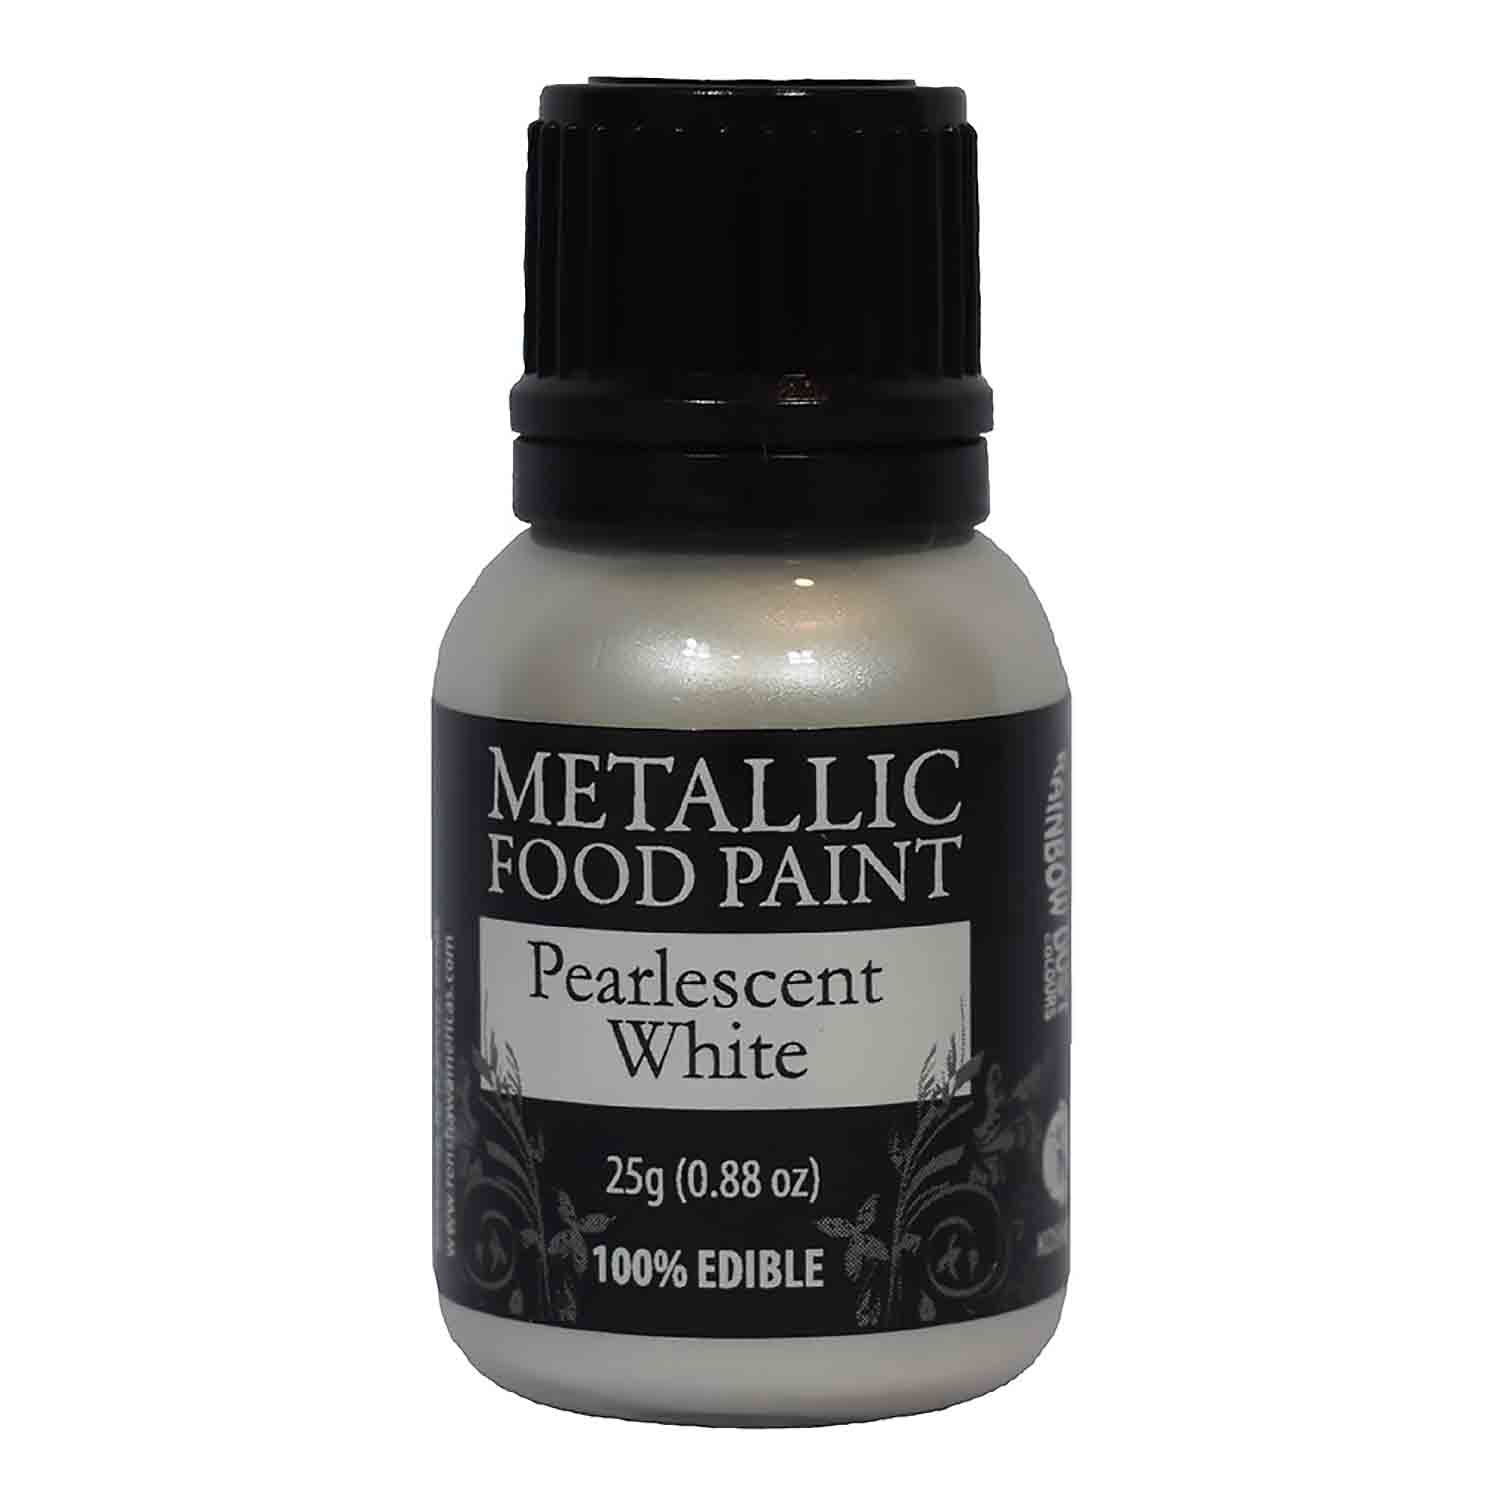 Pearlescent White Metallic Food Paint